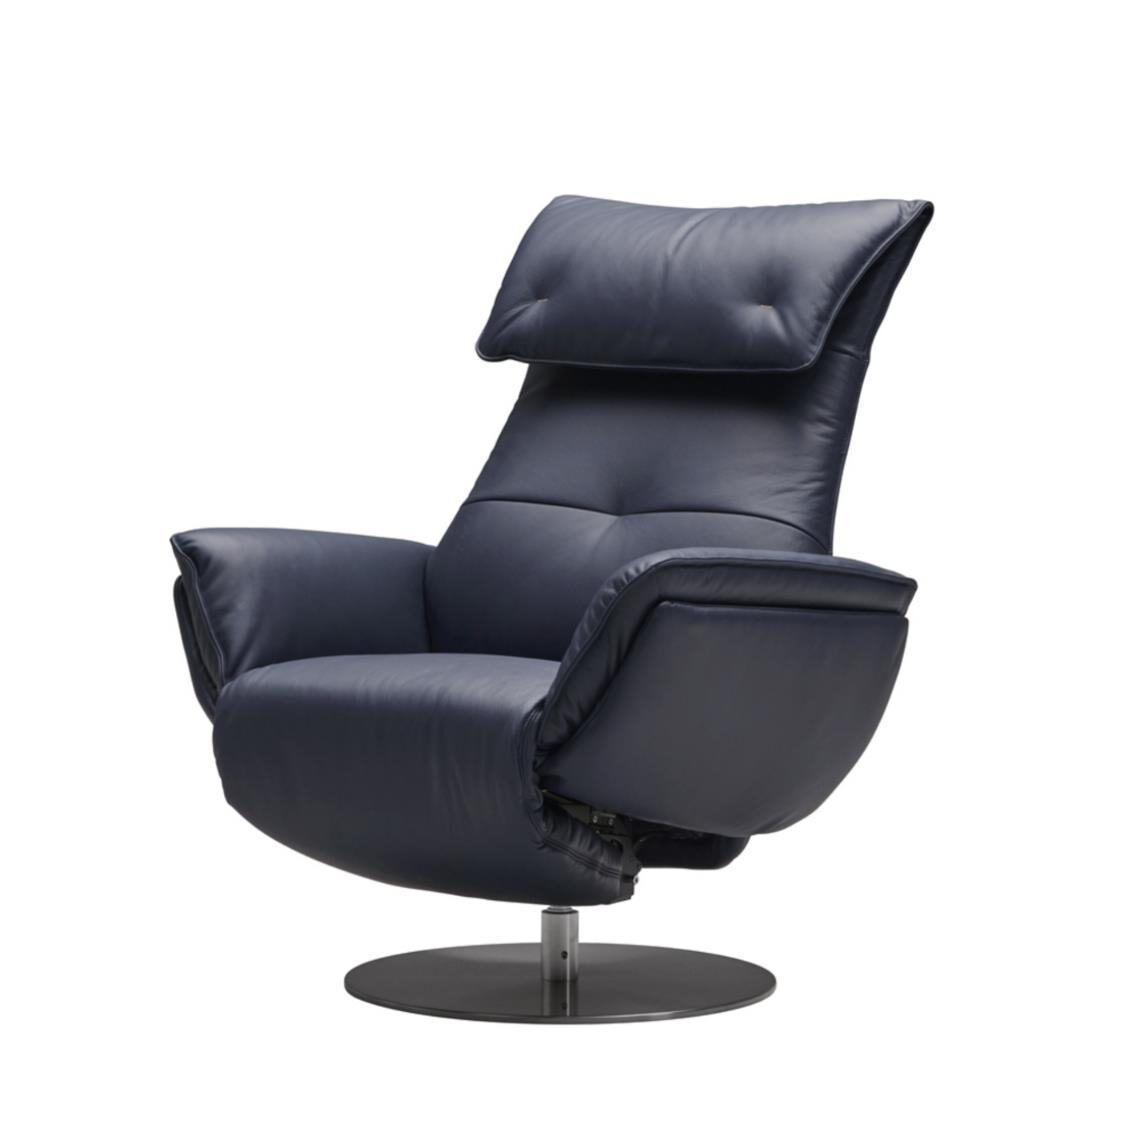 Wolke Chair - Full Leather L664A Denim